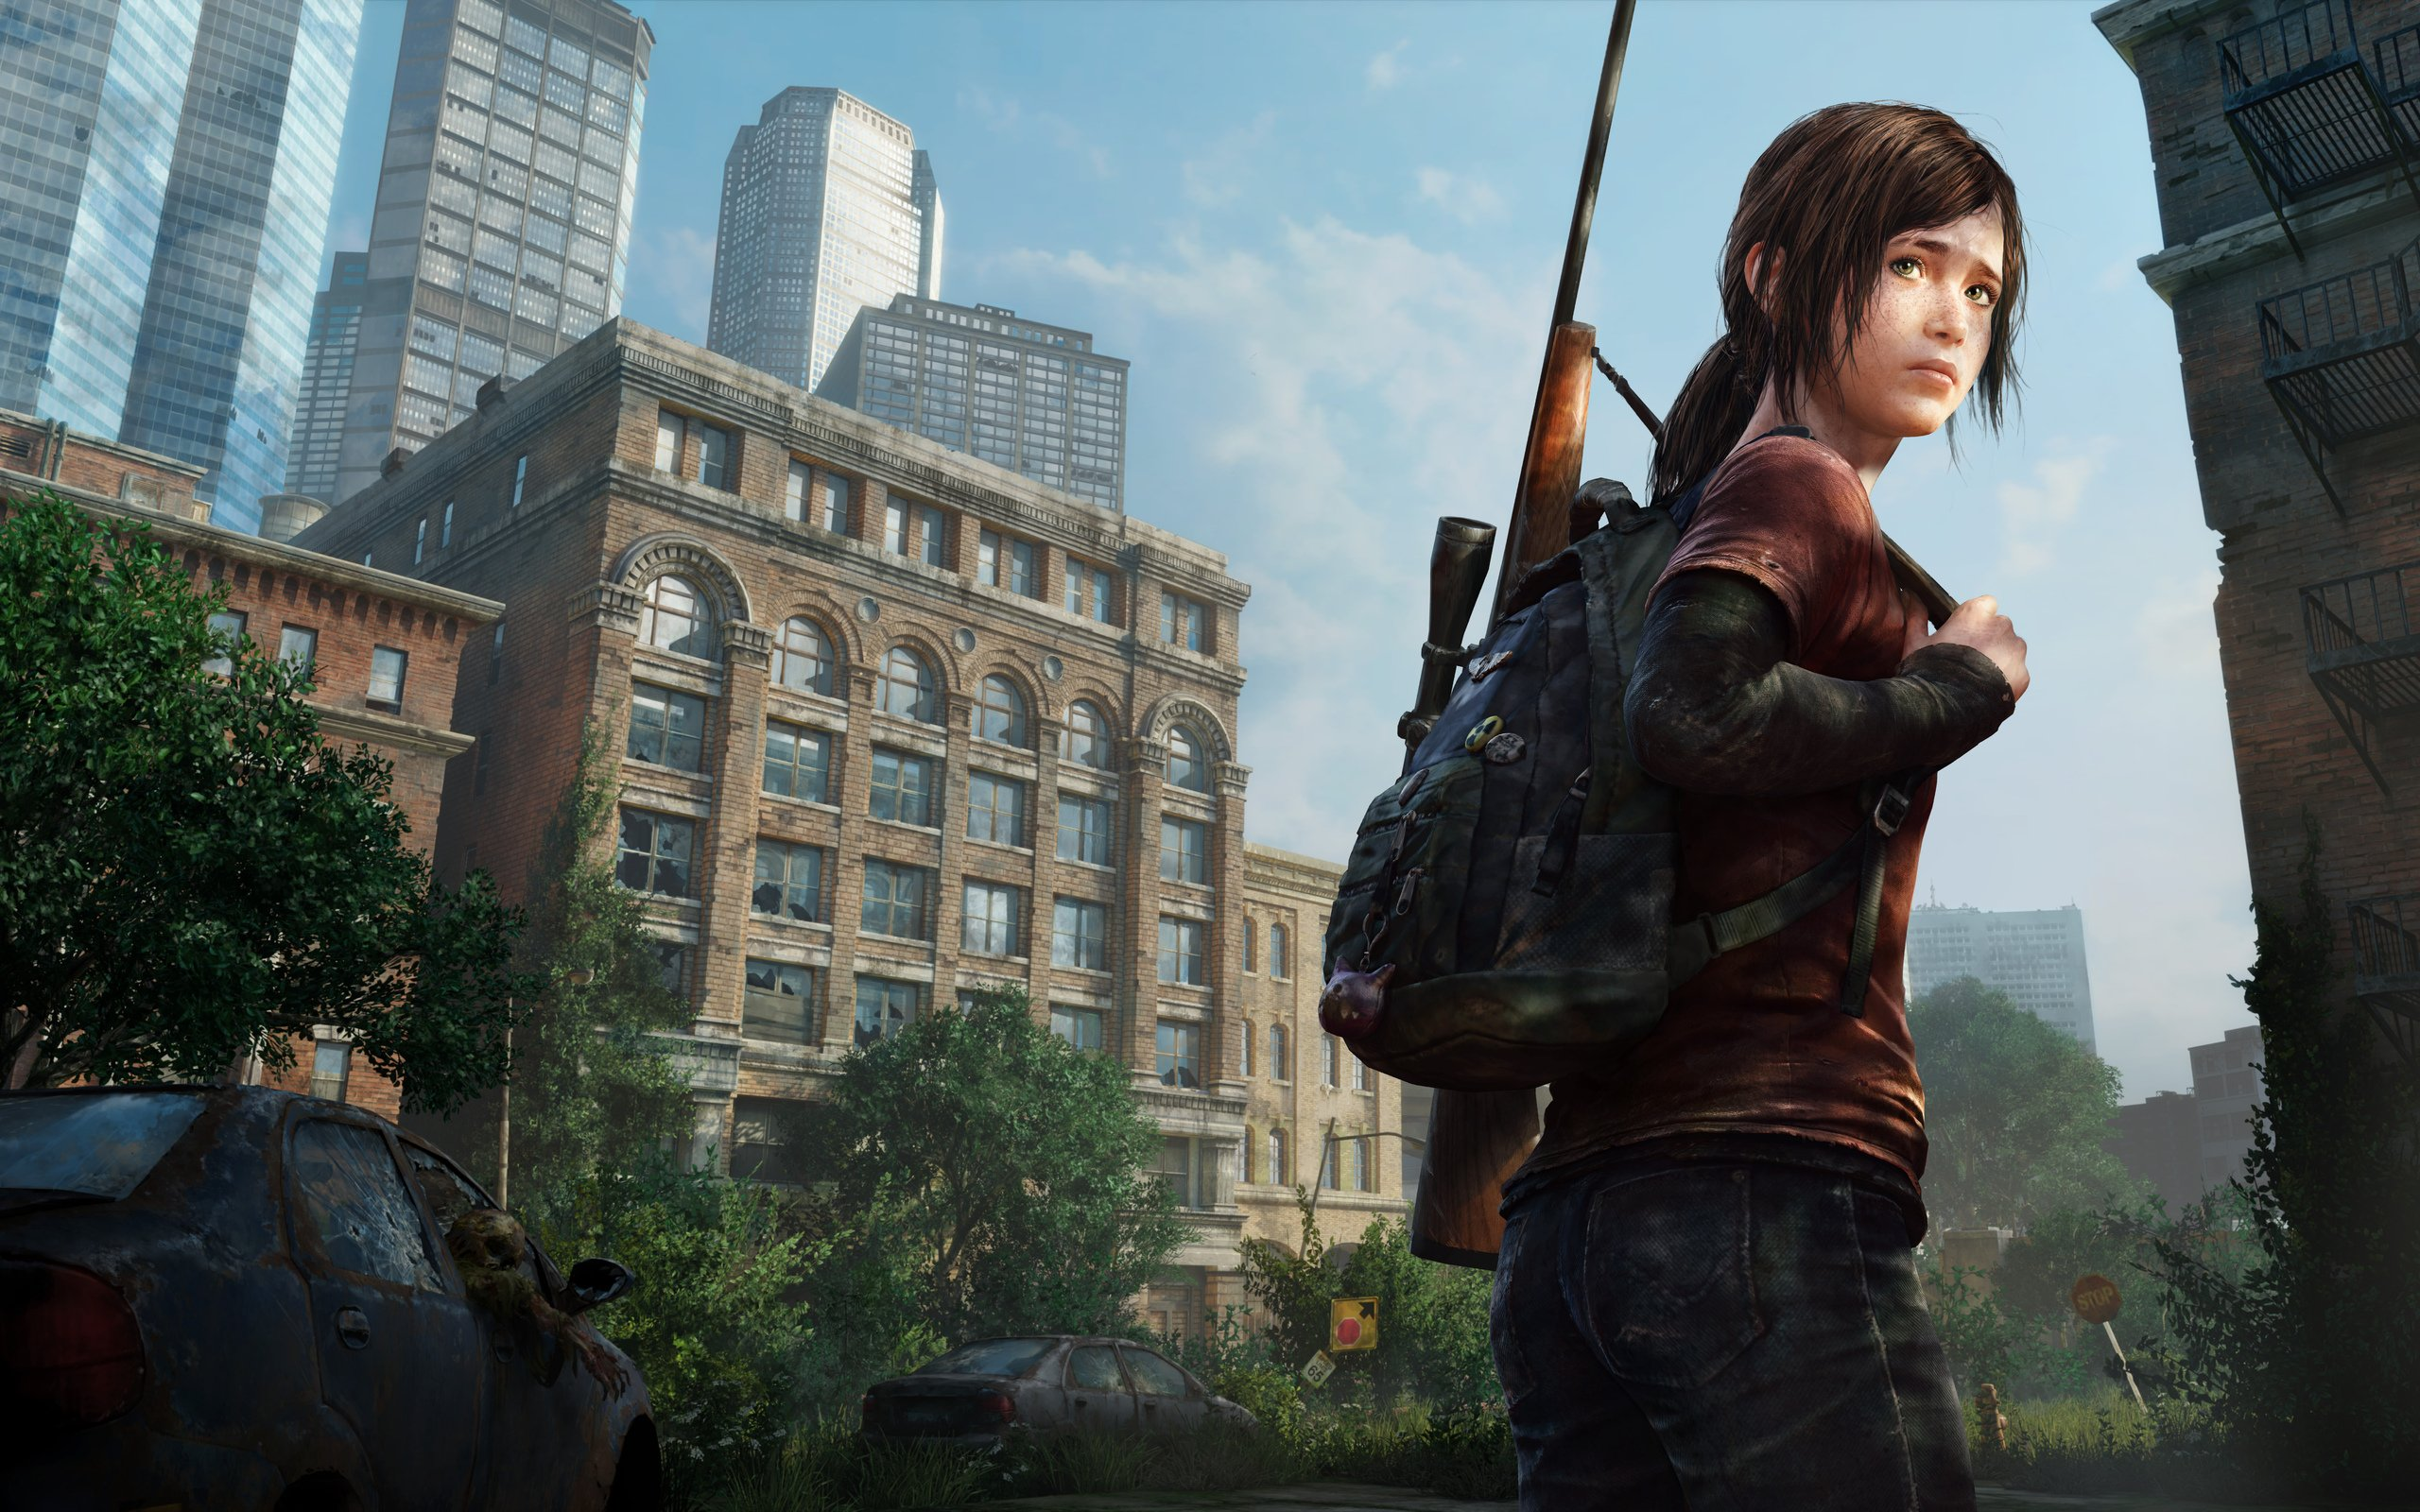 Wallpaper Game The Last of Us Desktop Wallpapers and Themes 2560x1600